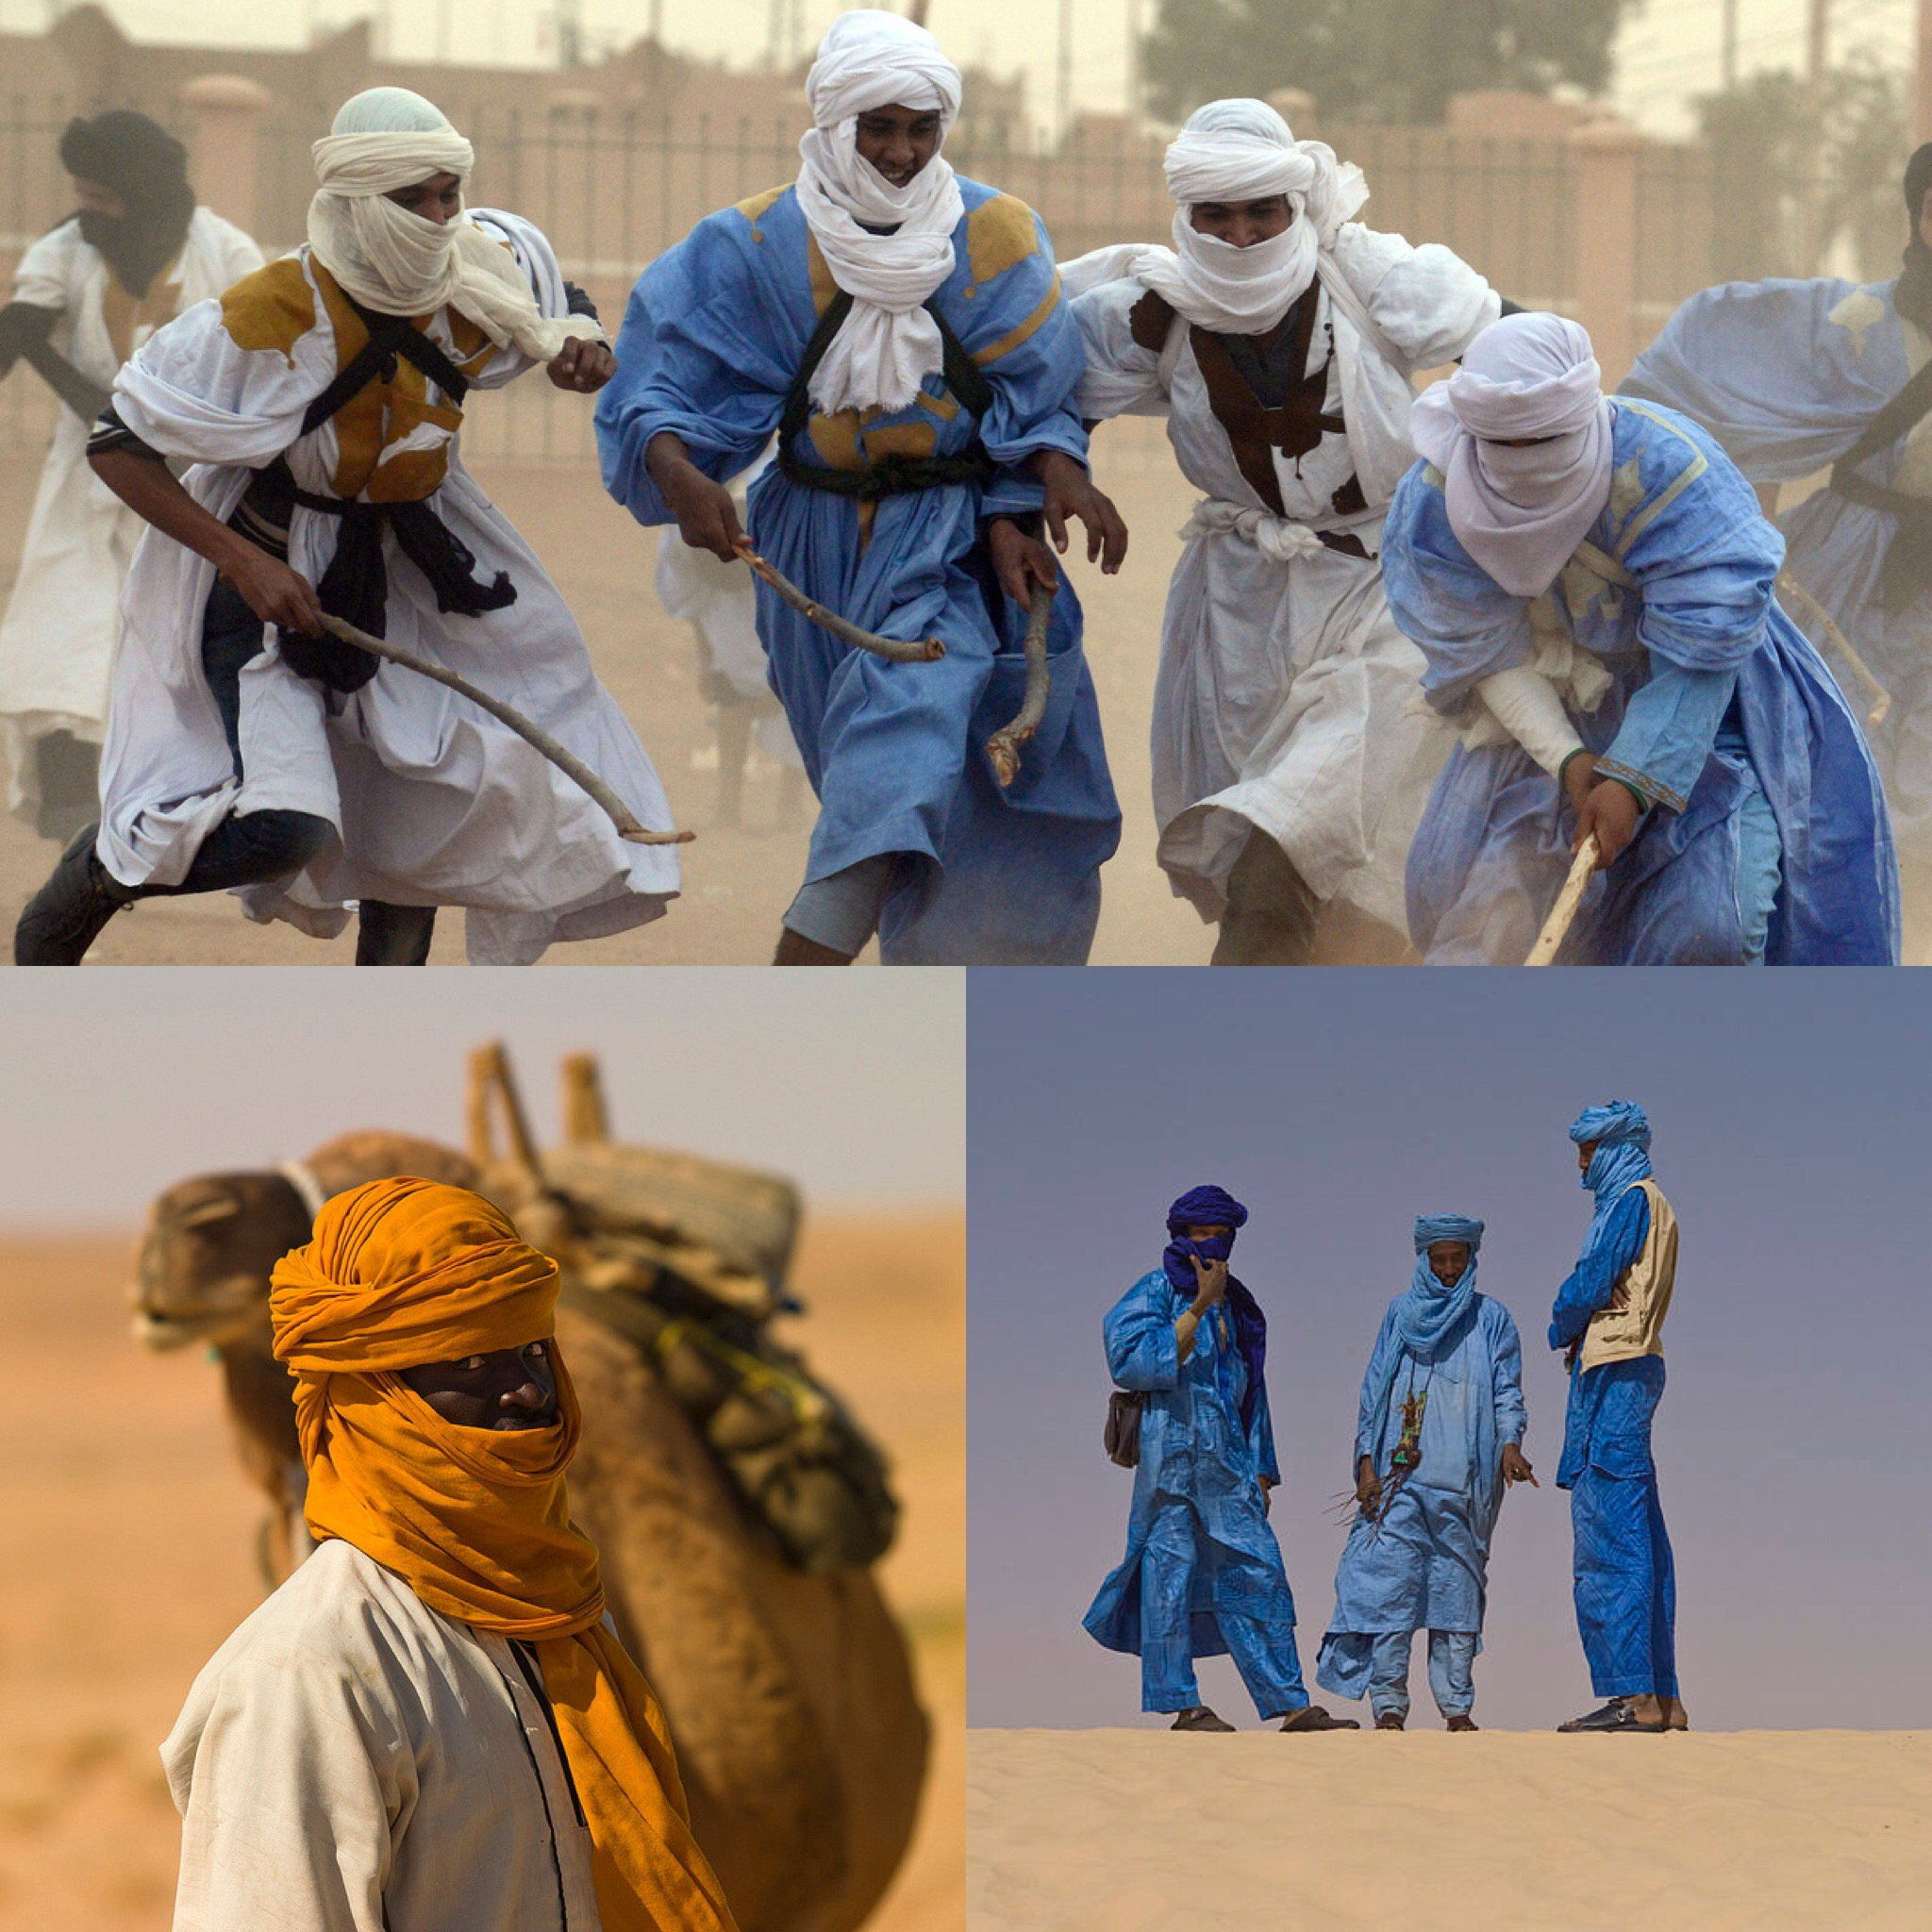 Photos captured of  Tuareg men